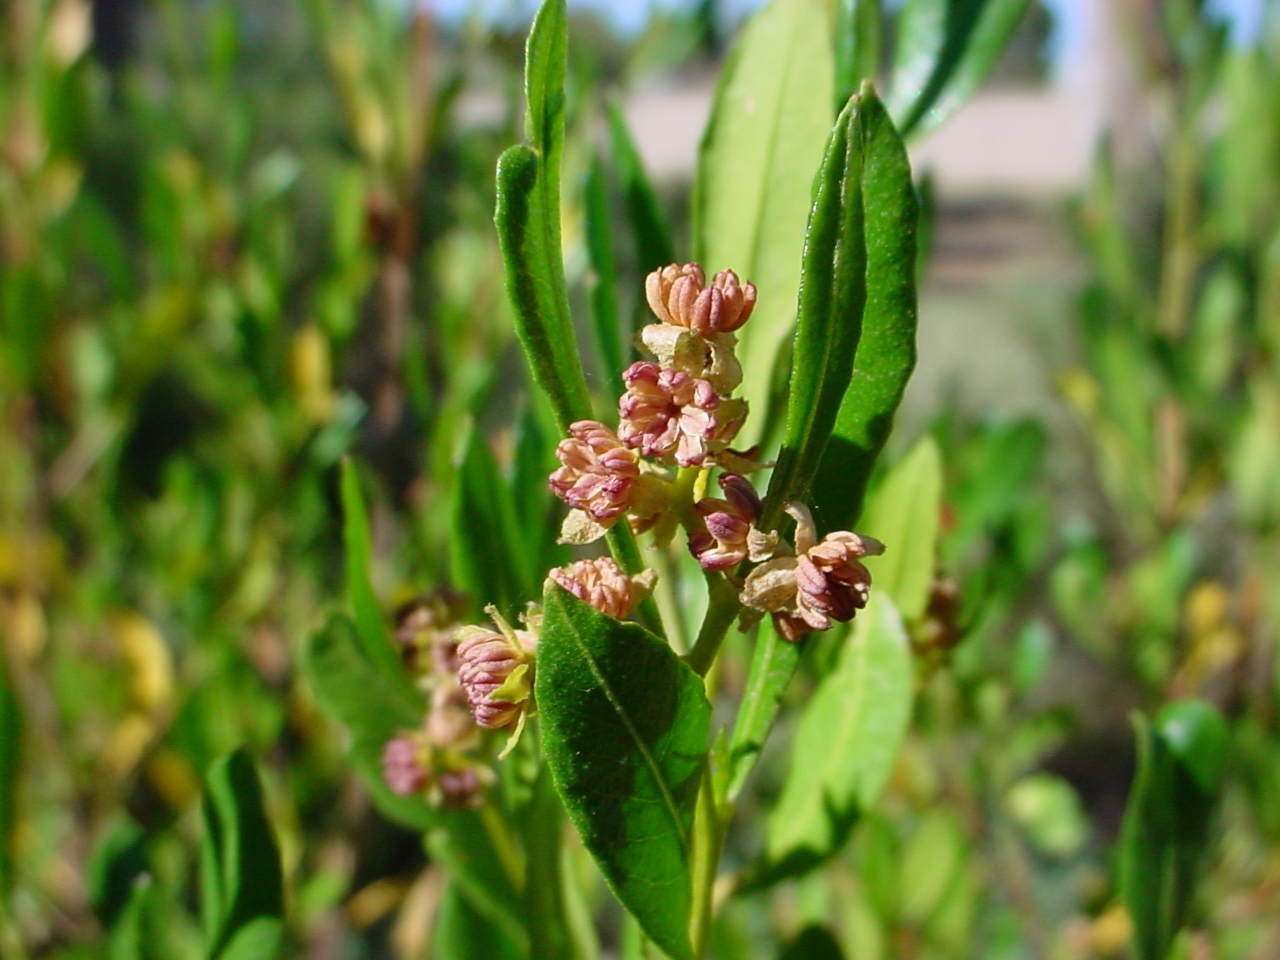 The flowers of Dodonaea viscosa